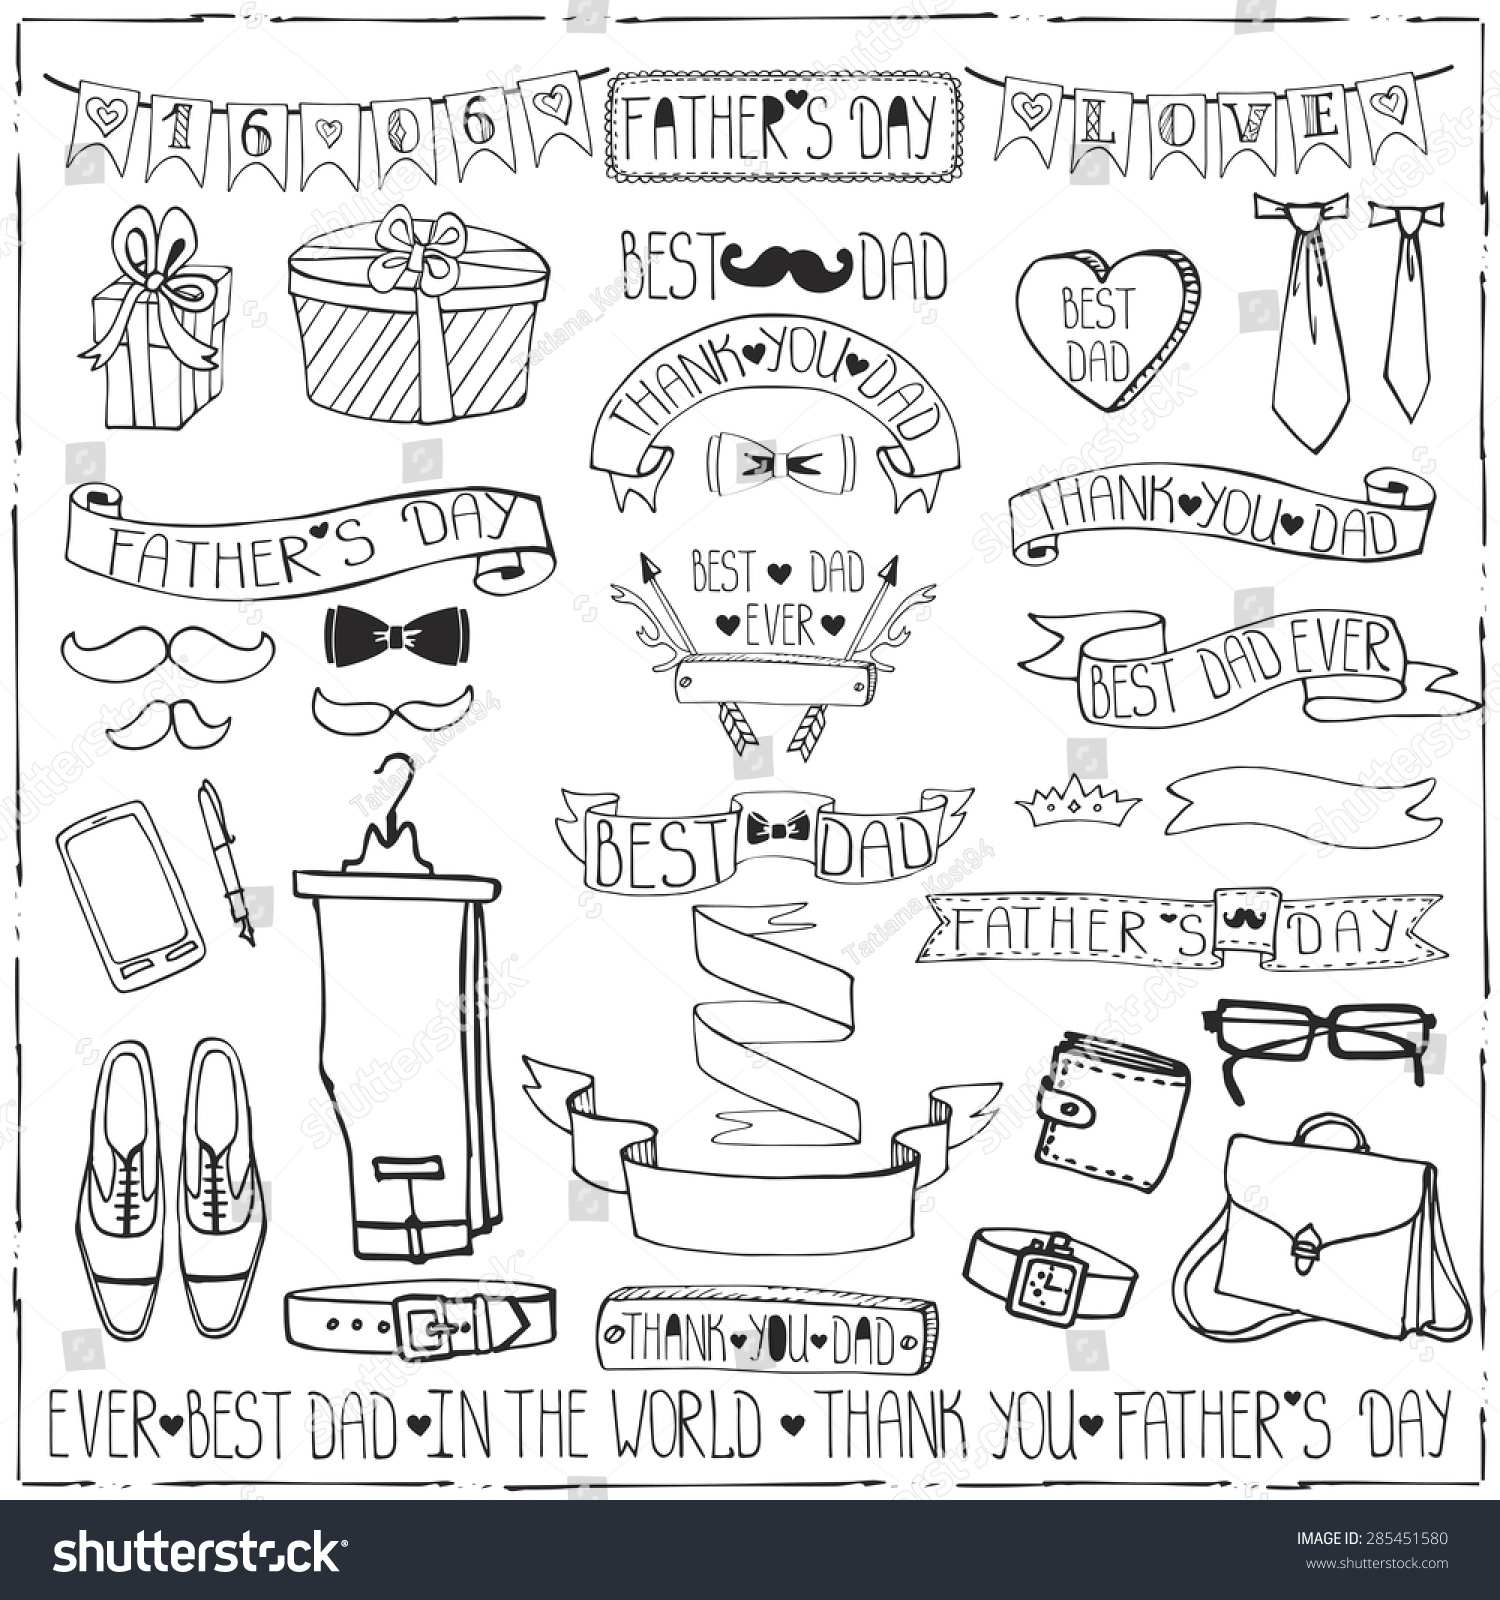 Doodle VectorFathers Day Decor Elements And Lettering SetLinear Hand Drawing Ribbons Banner